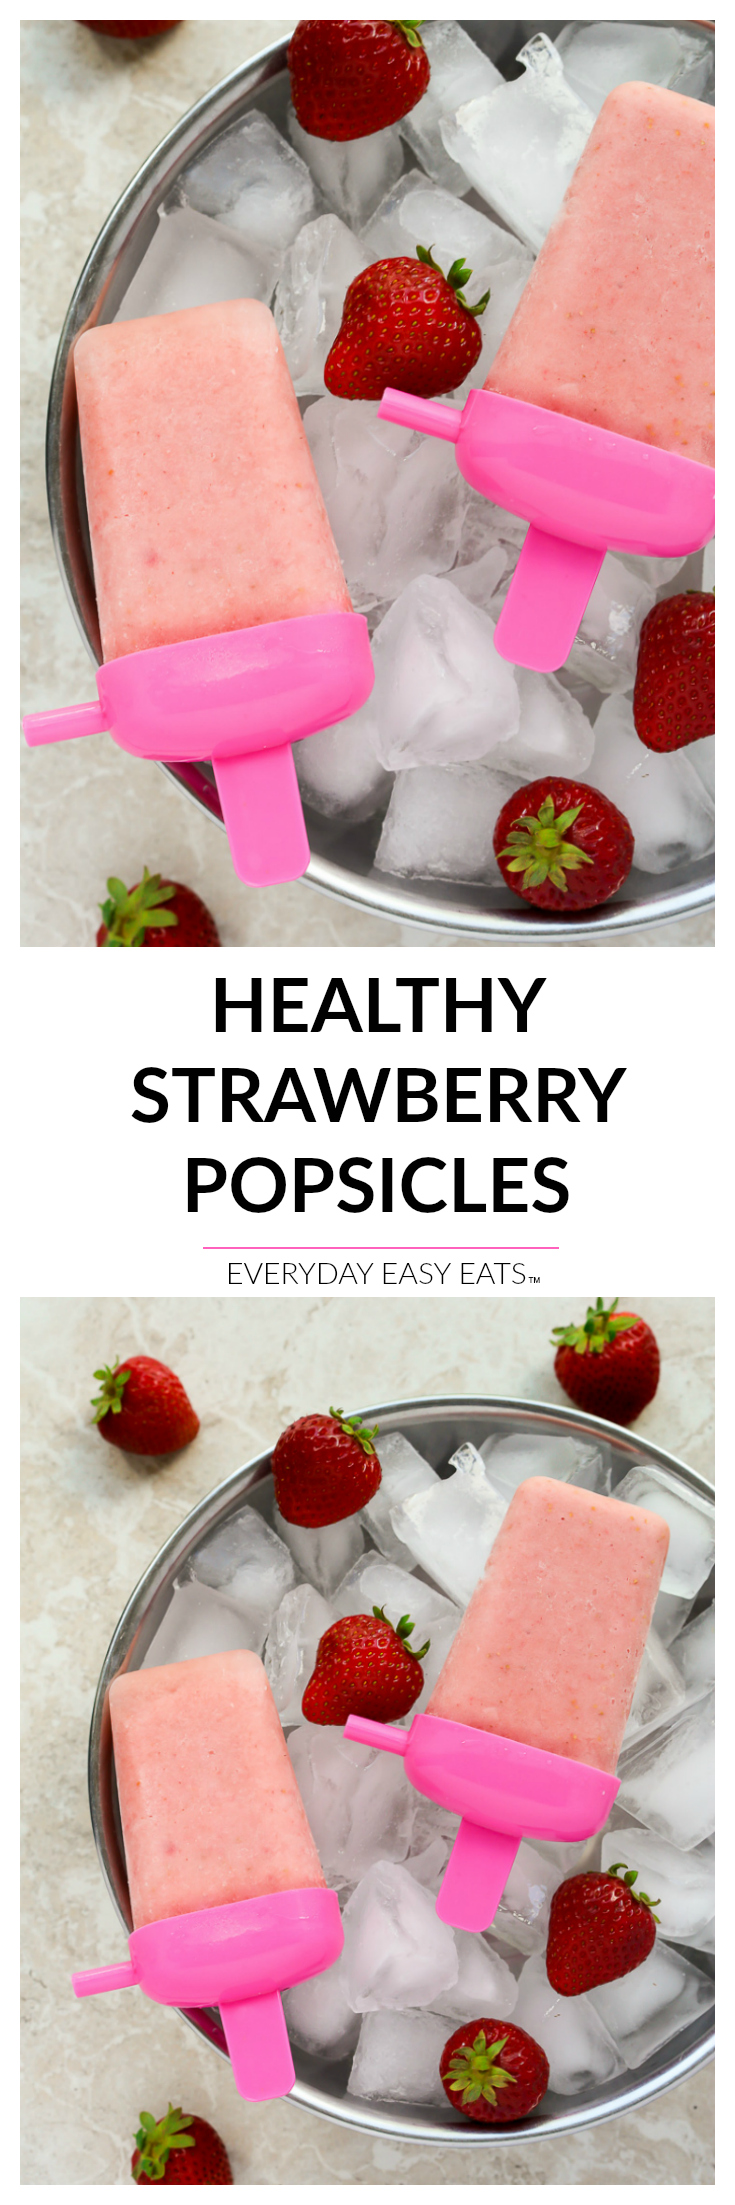 Healthy Strawberry Popsicles - 4-ingredients are all you need to make these simple, naturally sweetened frozen treats! | EverydayEasyEats.com